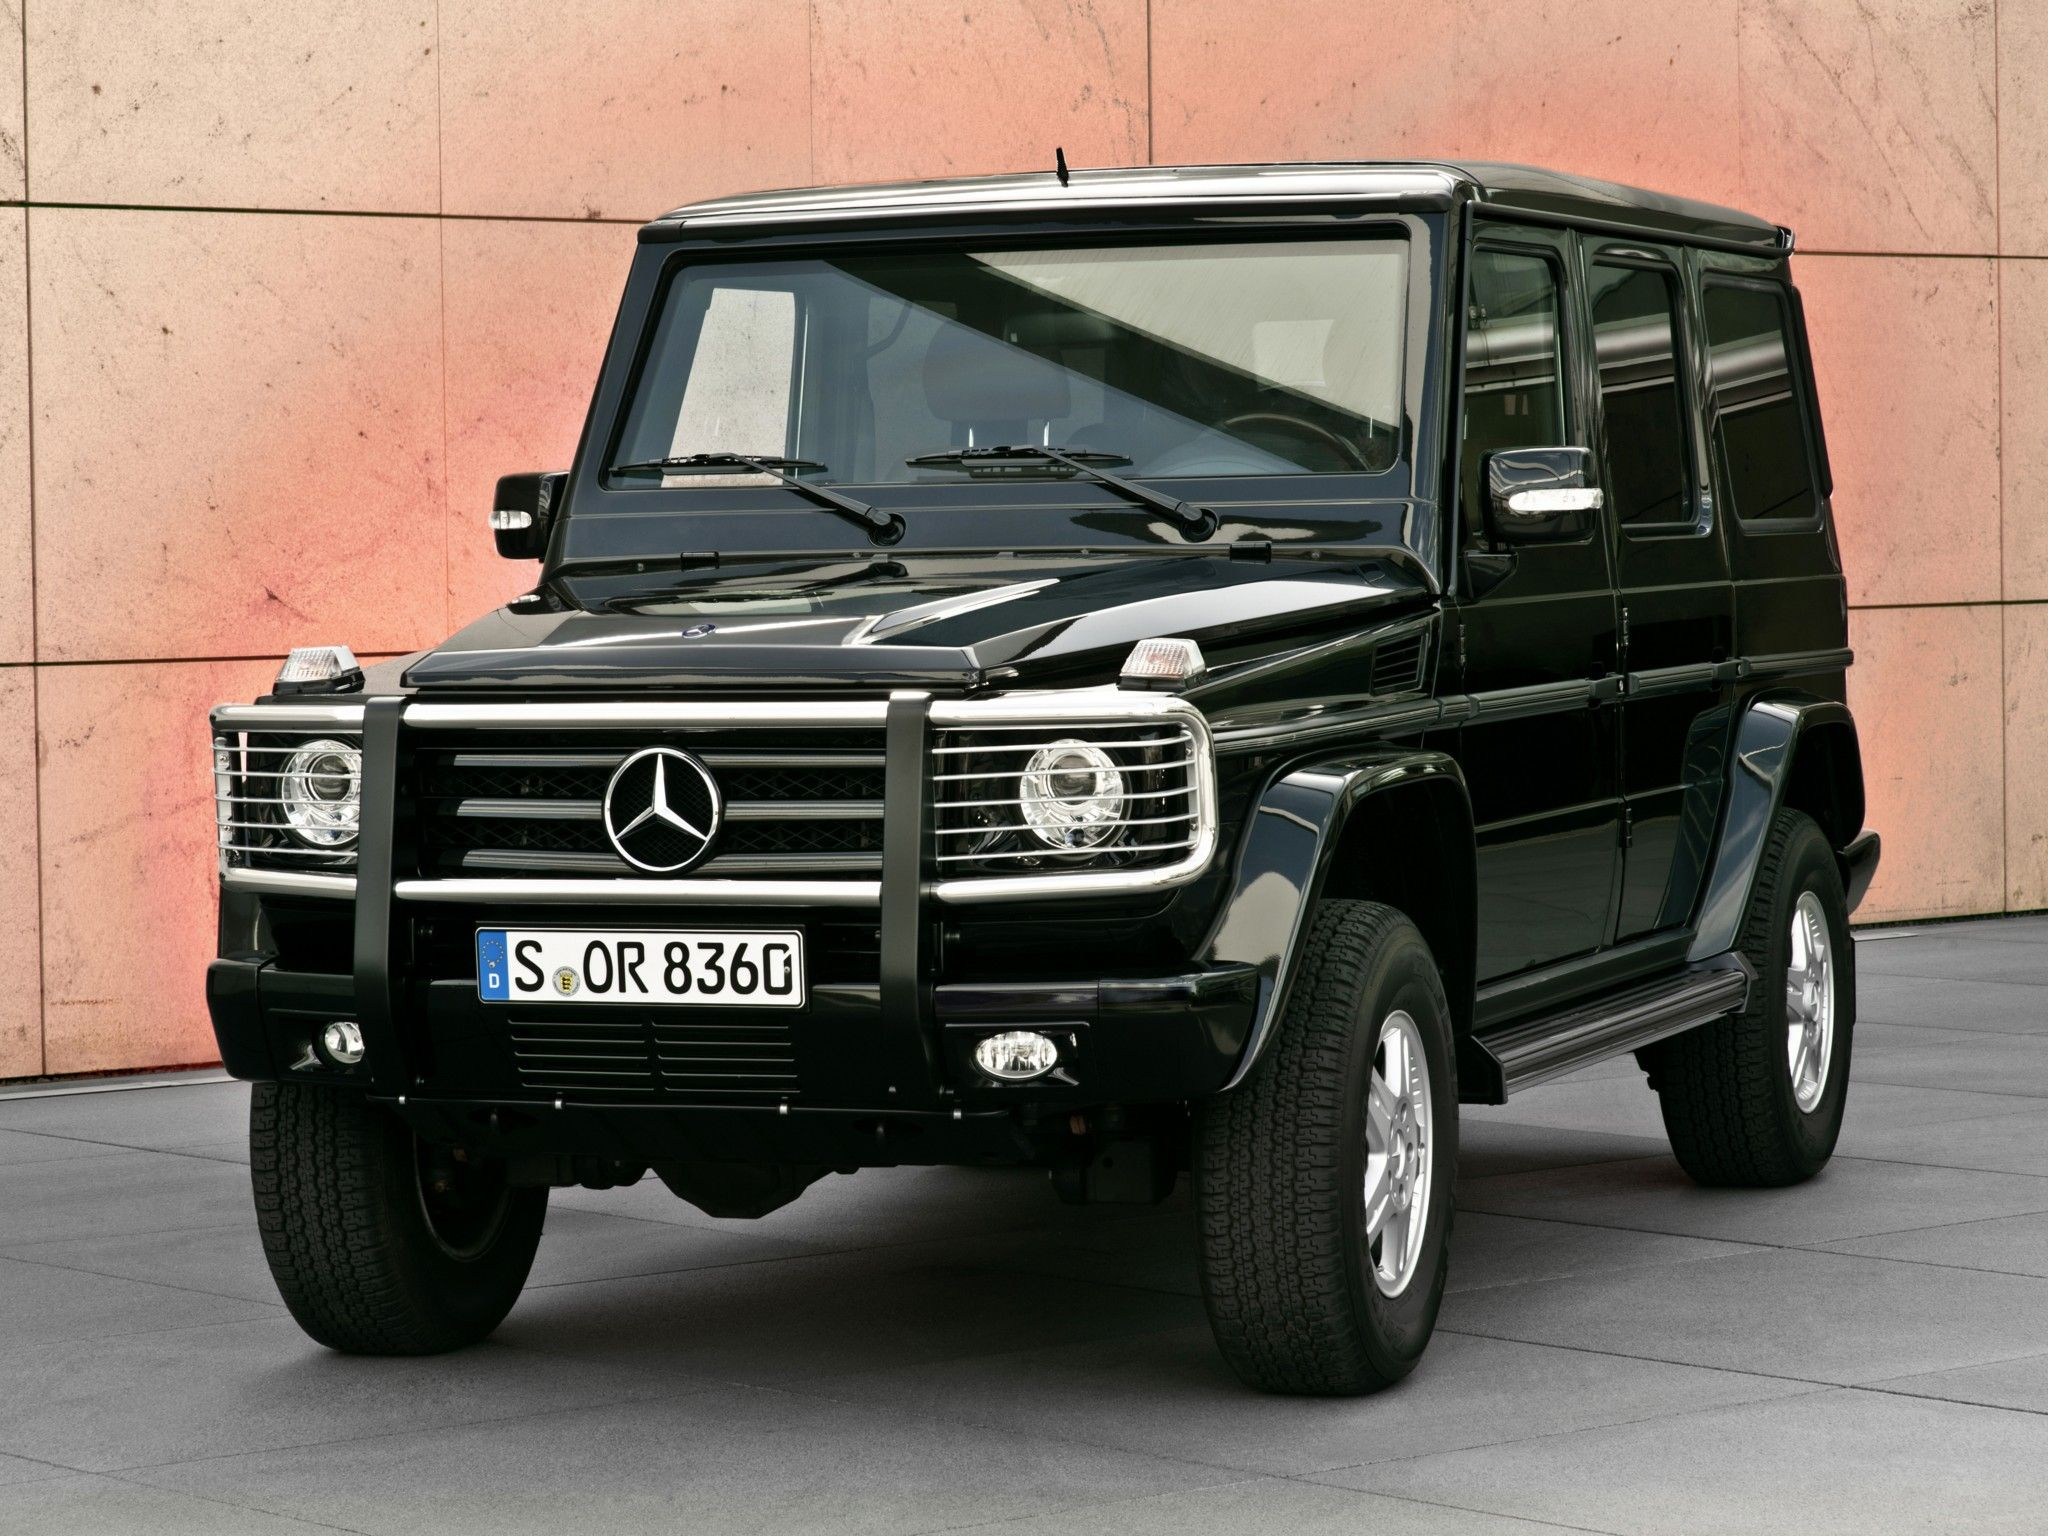 2009 armored mercedes benz g 500 guard w463 suv 4x4 g for Mercedes benz 4x4 g class